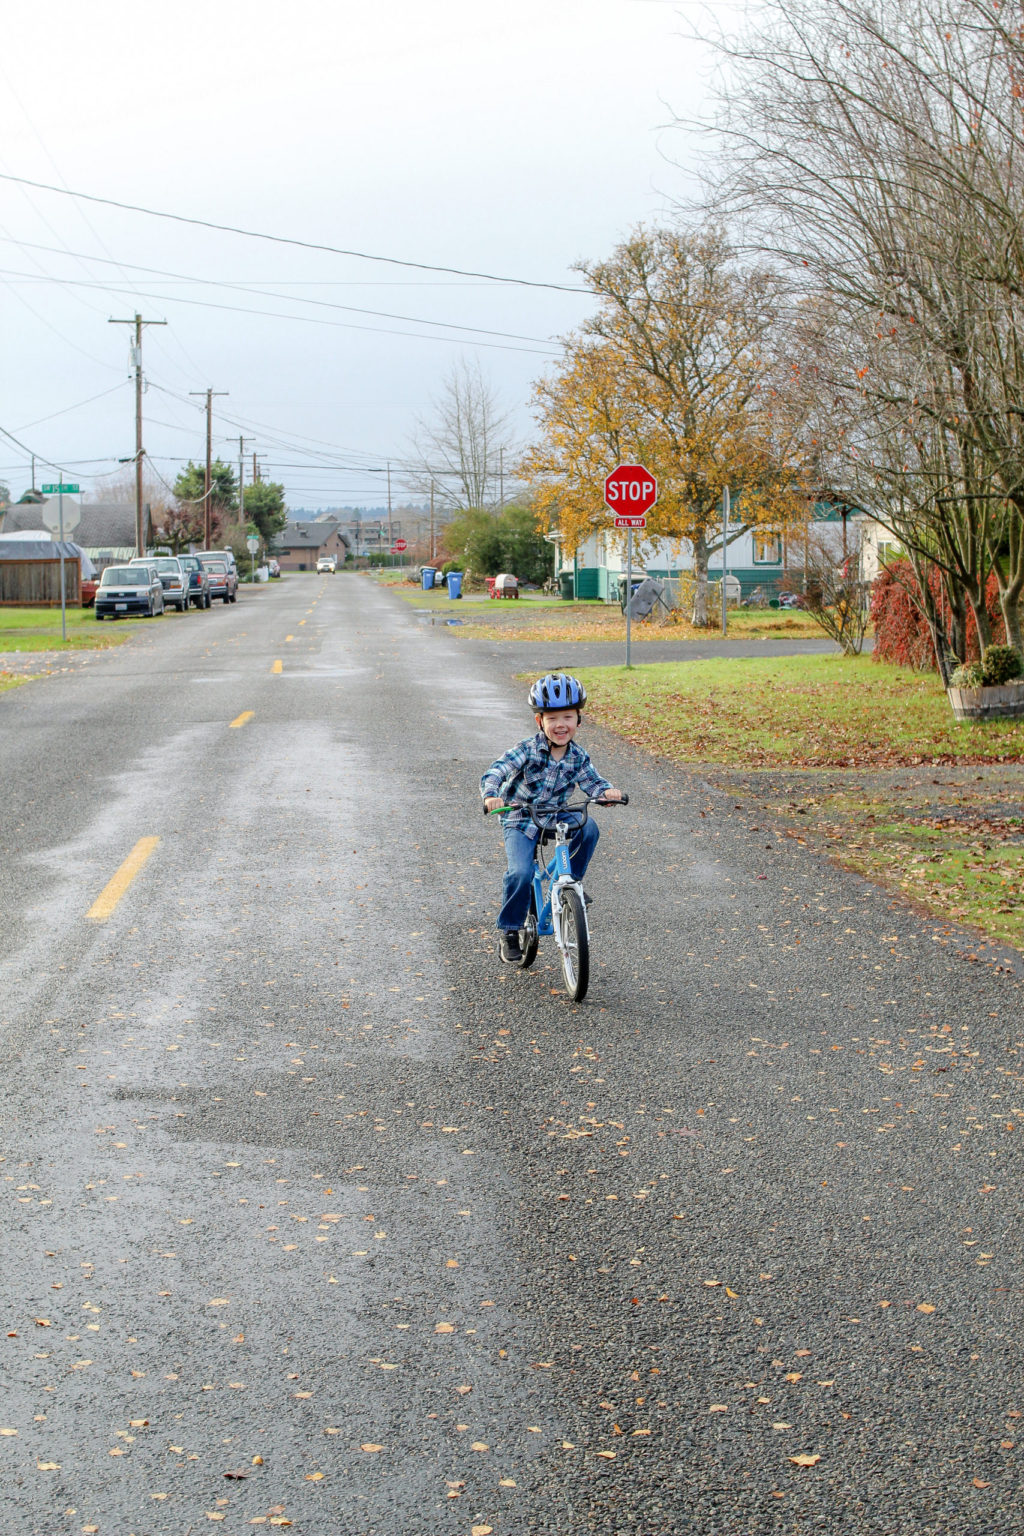 How to start riding a bike. Riding a two wheeler. Learning to ride a bike